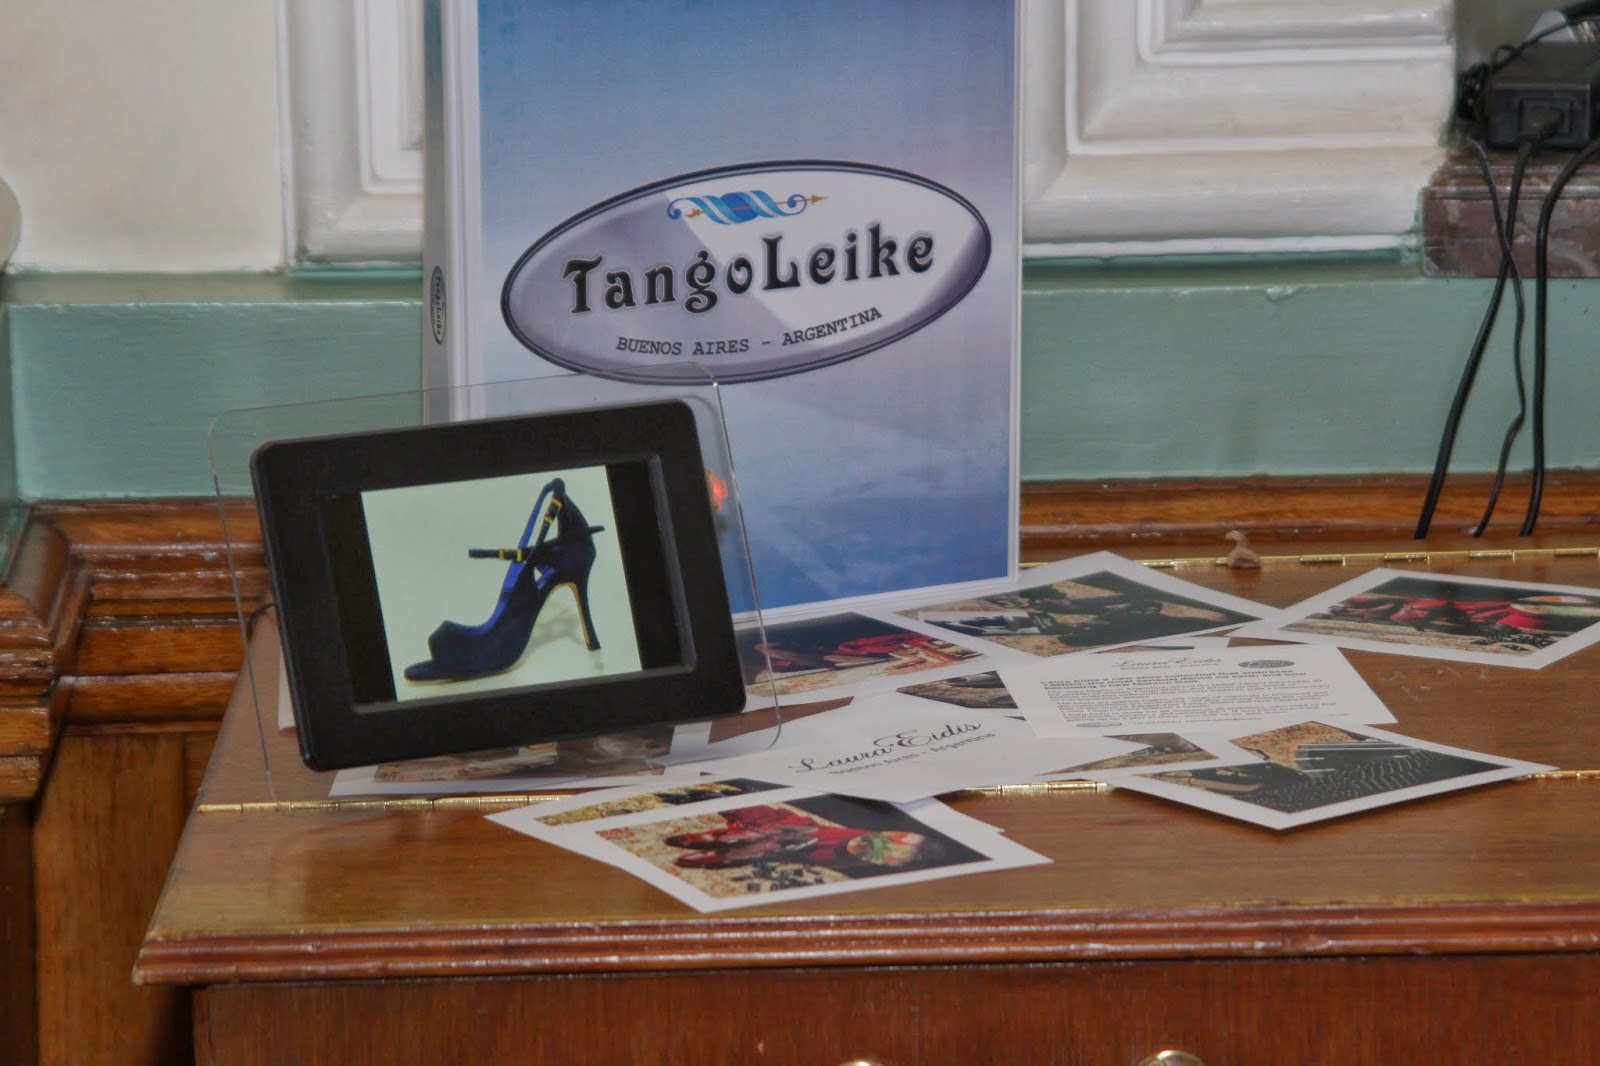 TangoLeike (Argentina) in the Designer Showroom